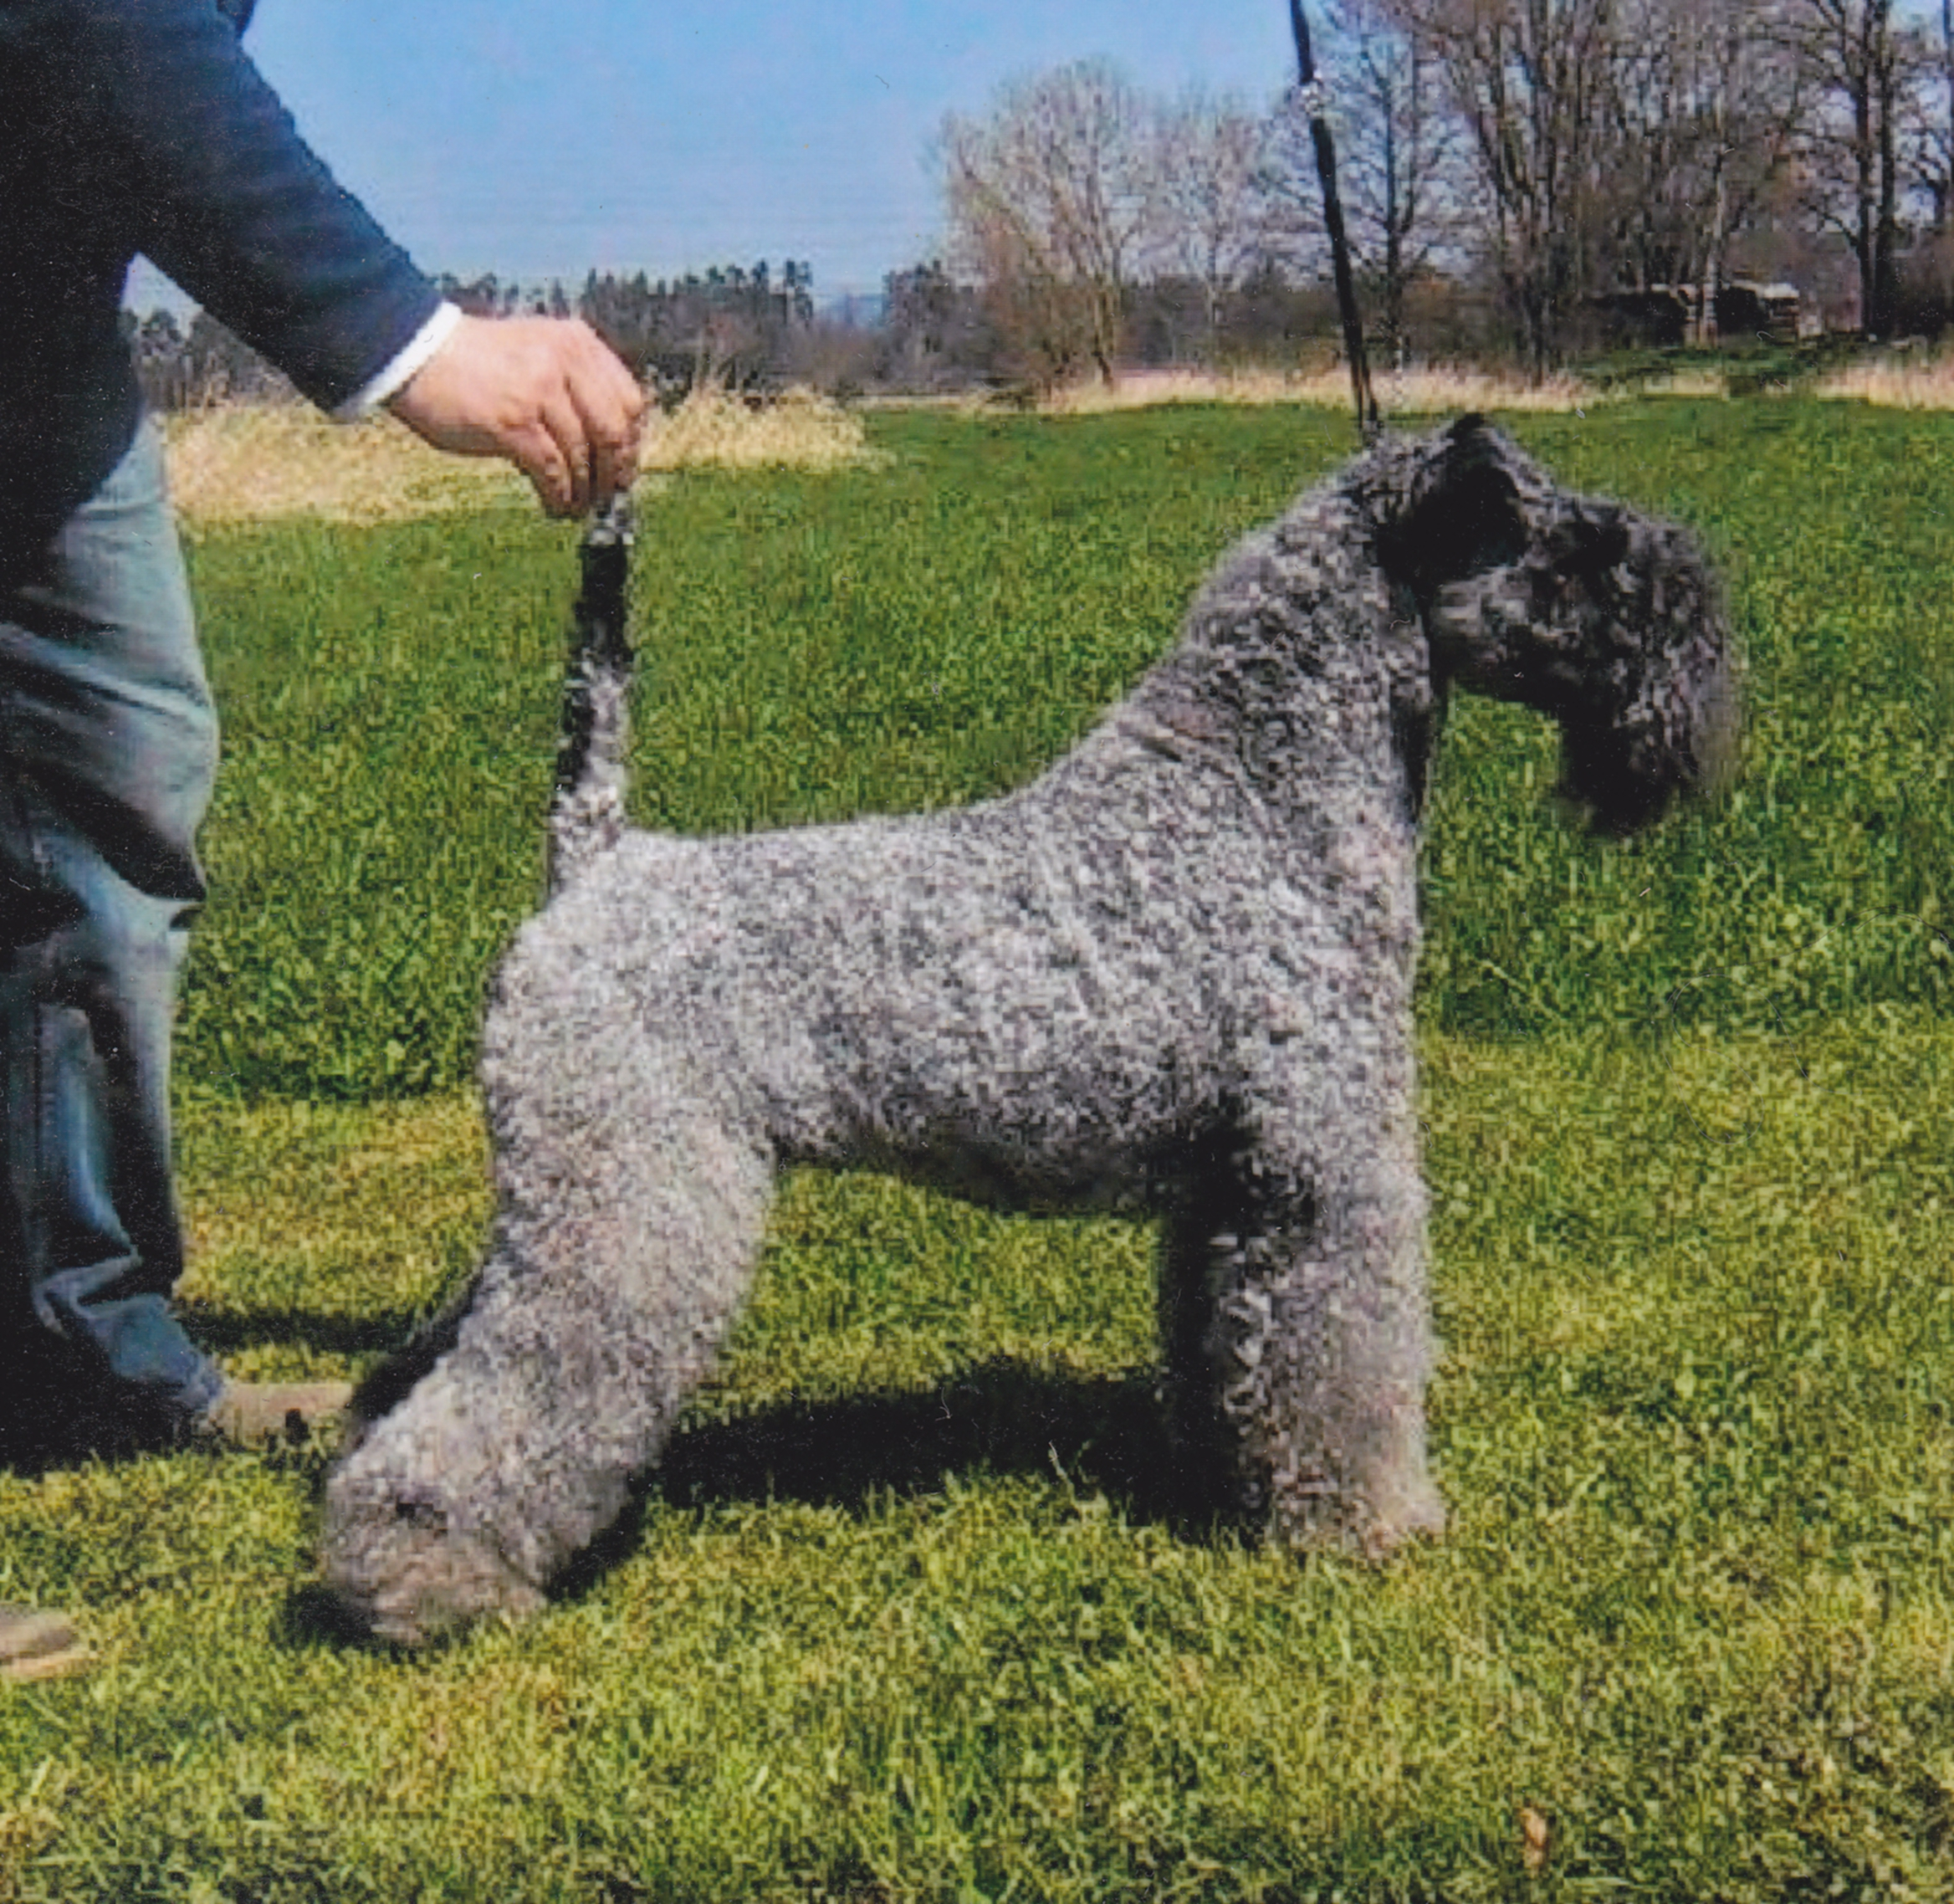 Kerry Blue Terrier with the owner wallpaper